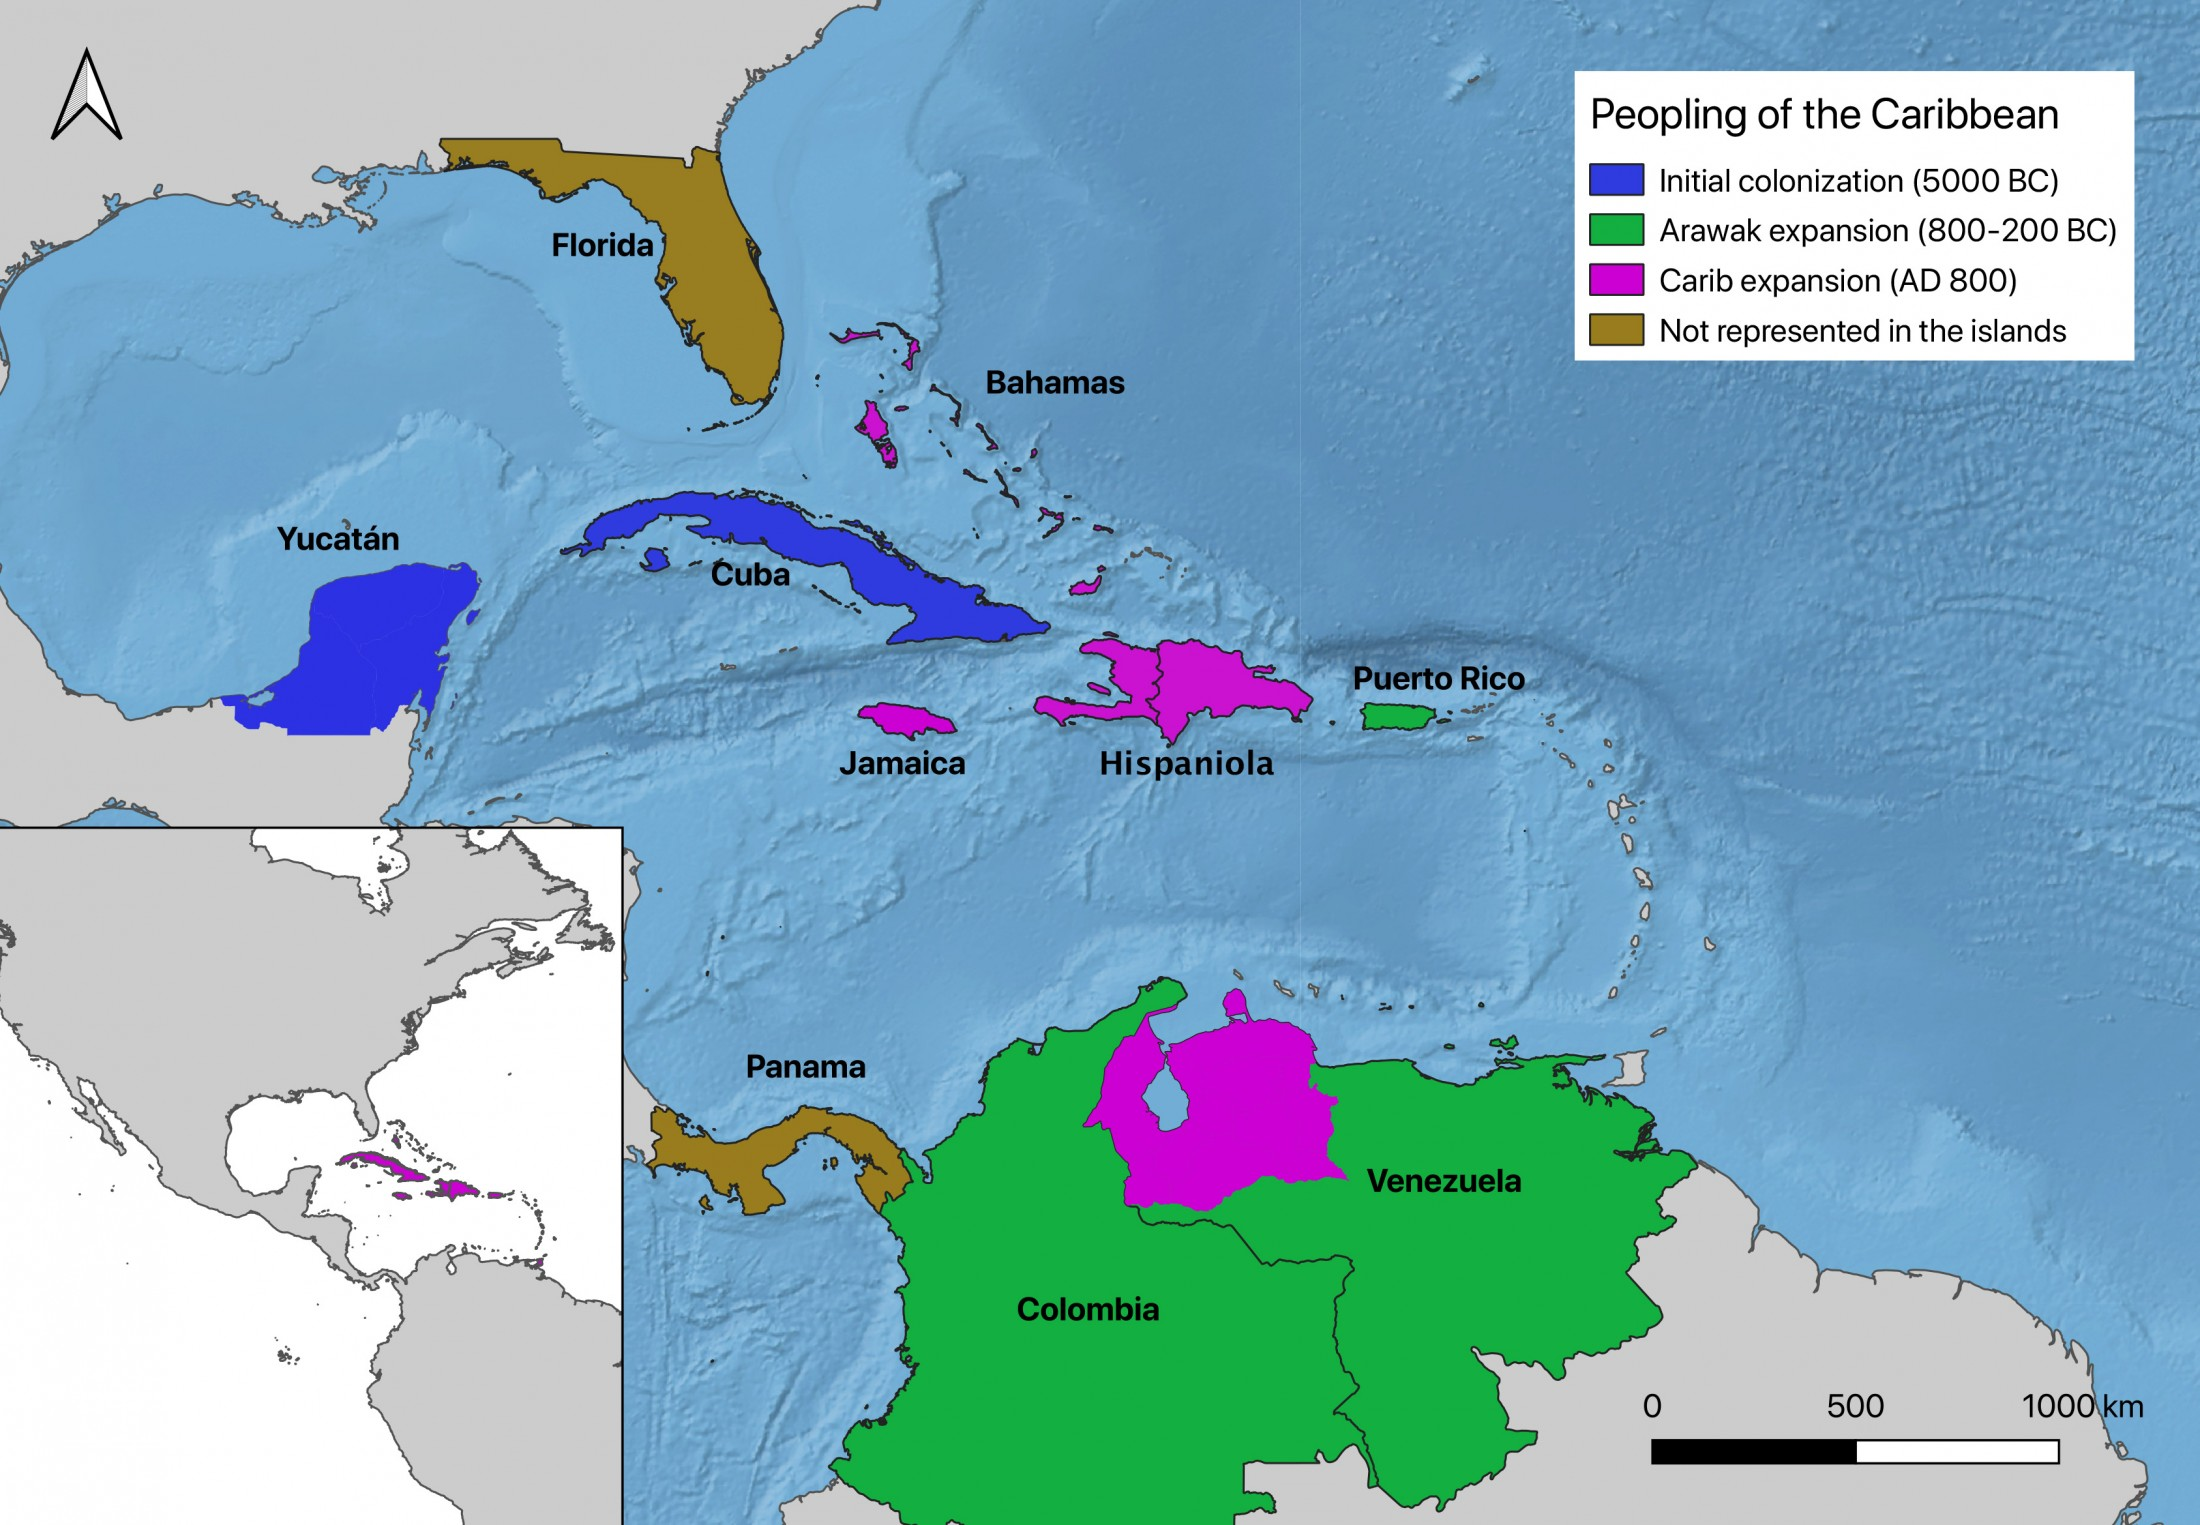 The map shows the three waves of colonization of the Caribbean